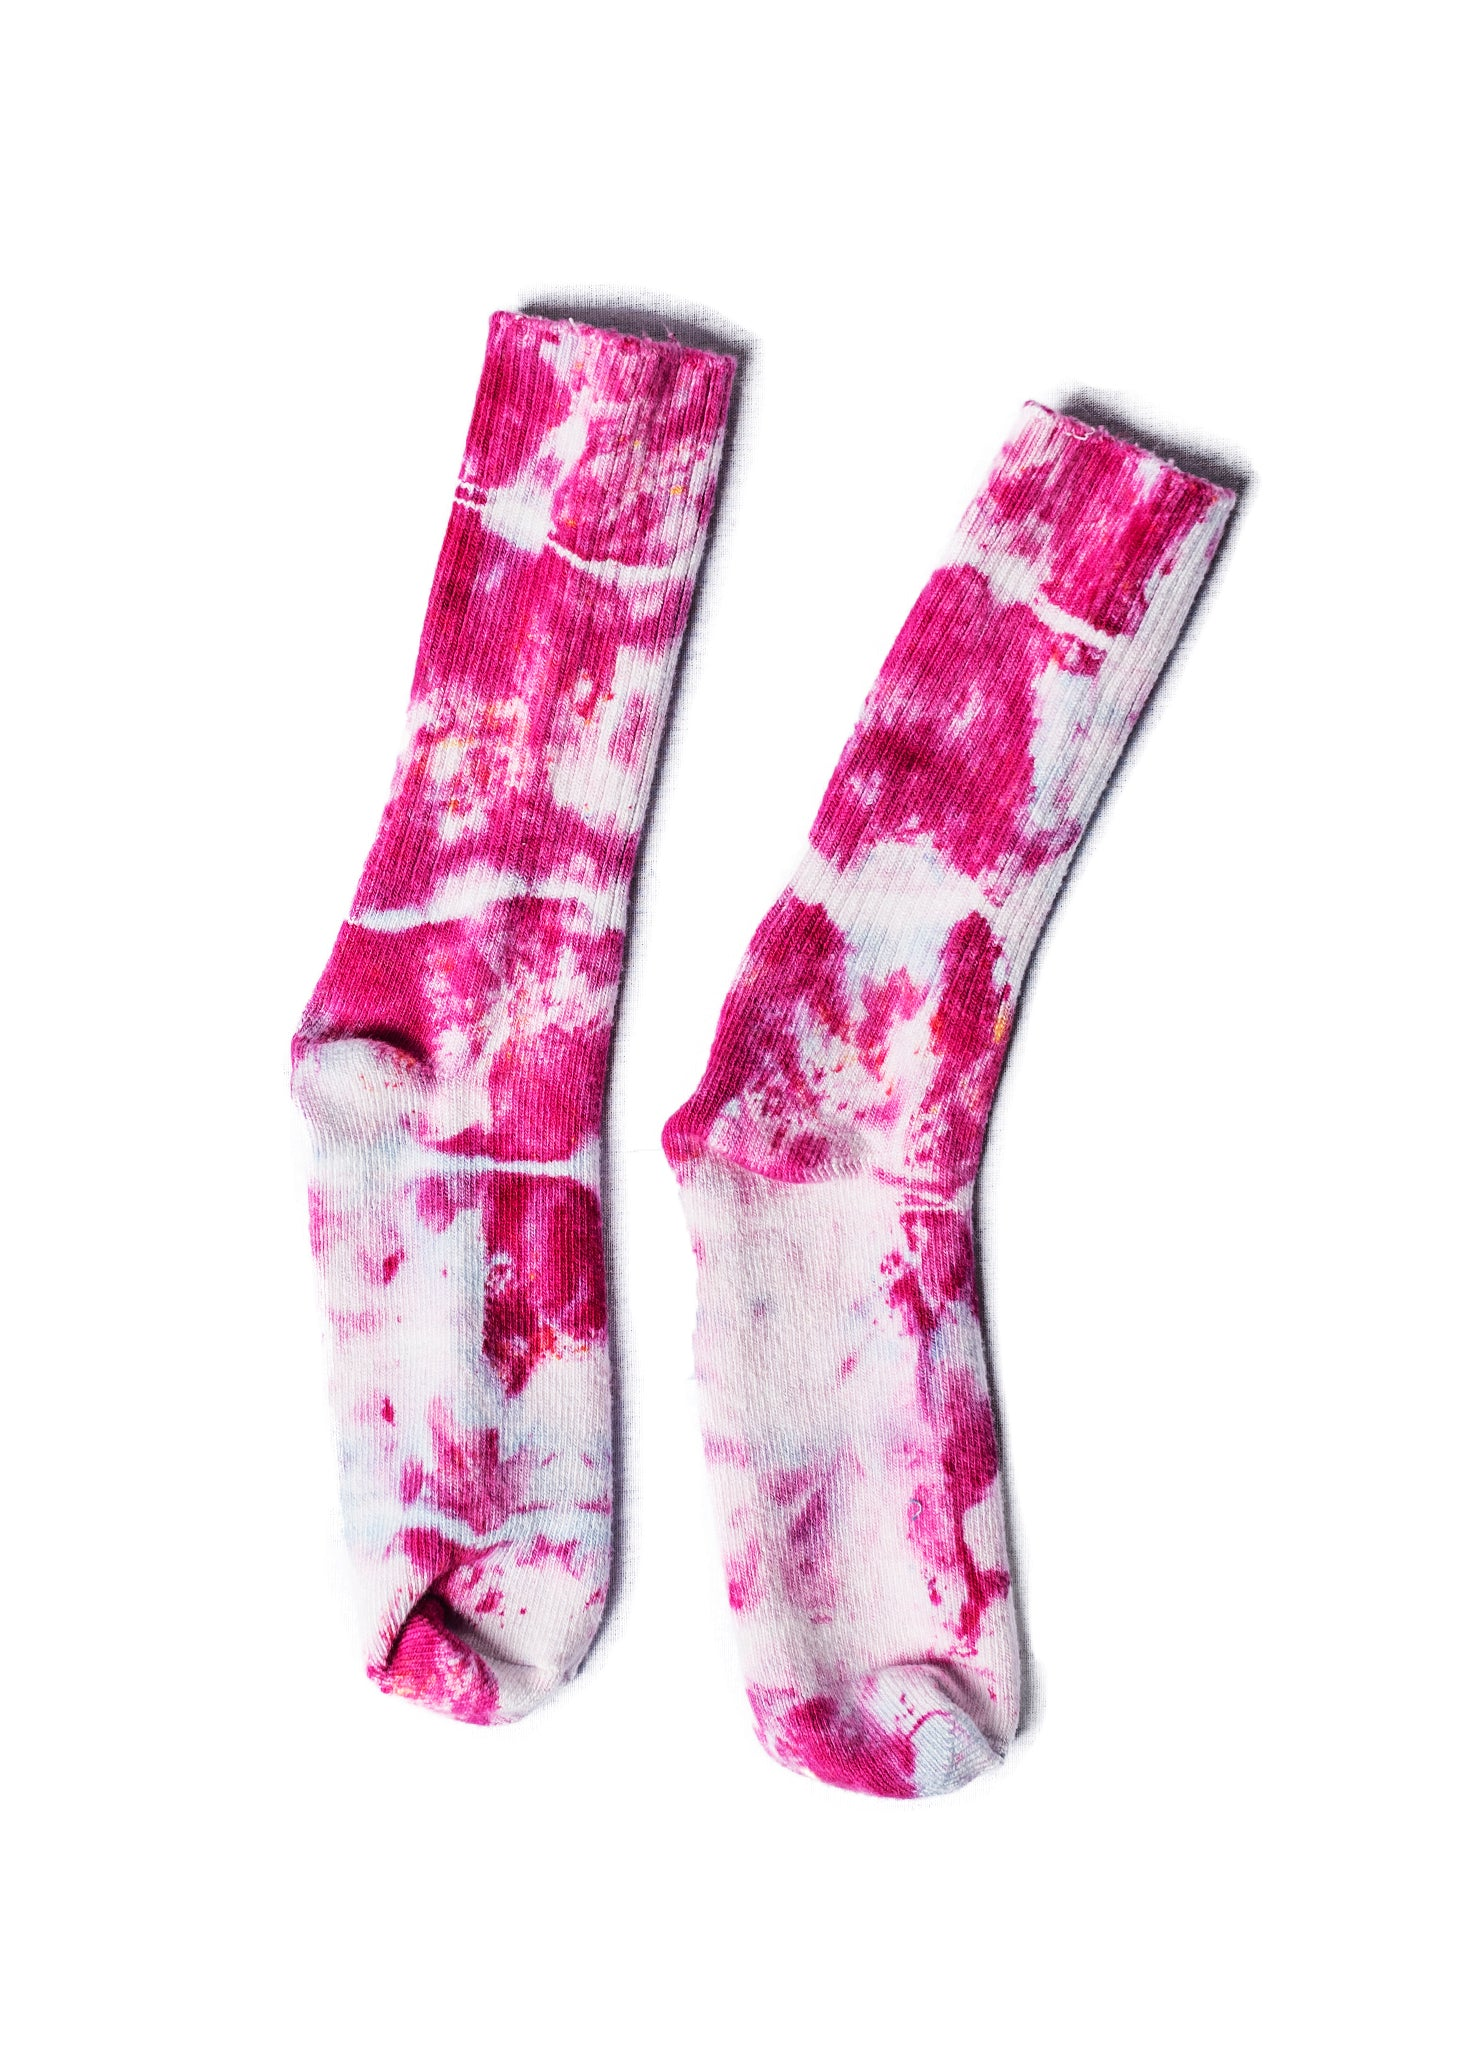 Bamboo Rayon Crew Socks-Shades of Pink - Crew Socks - Dyetology